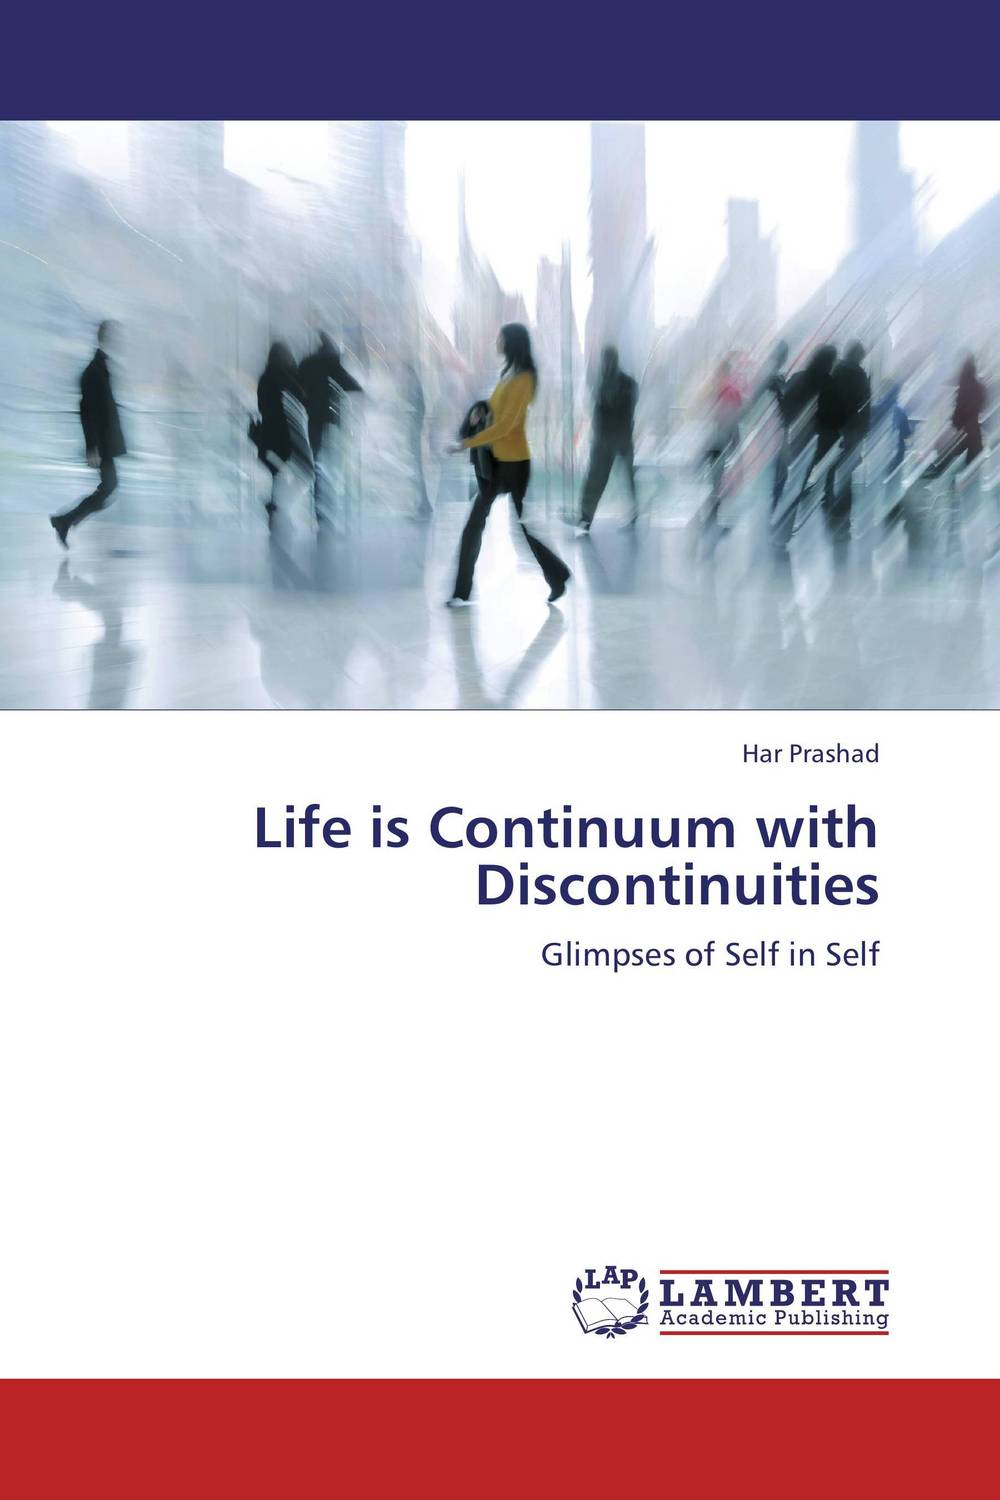 Life is Continuum with Discontinuities